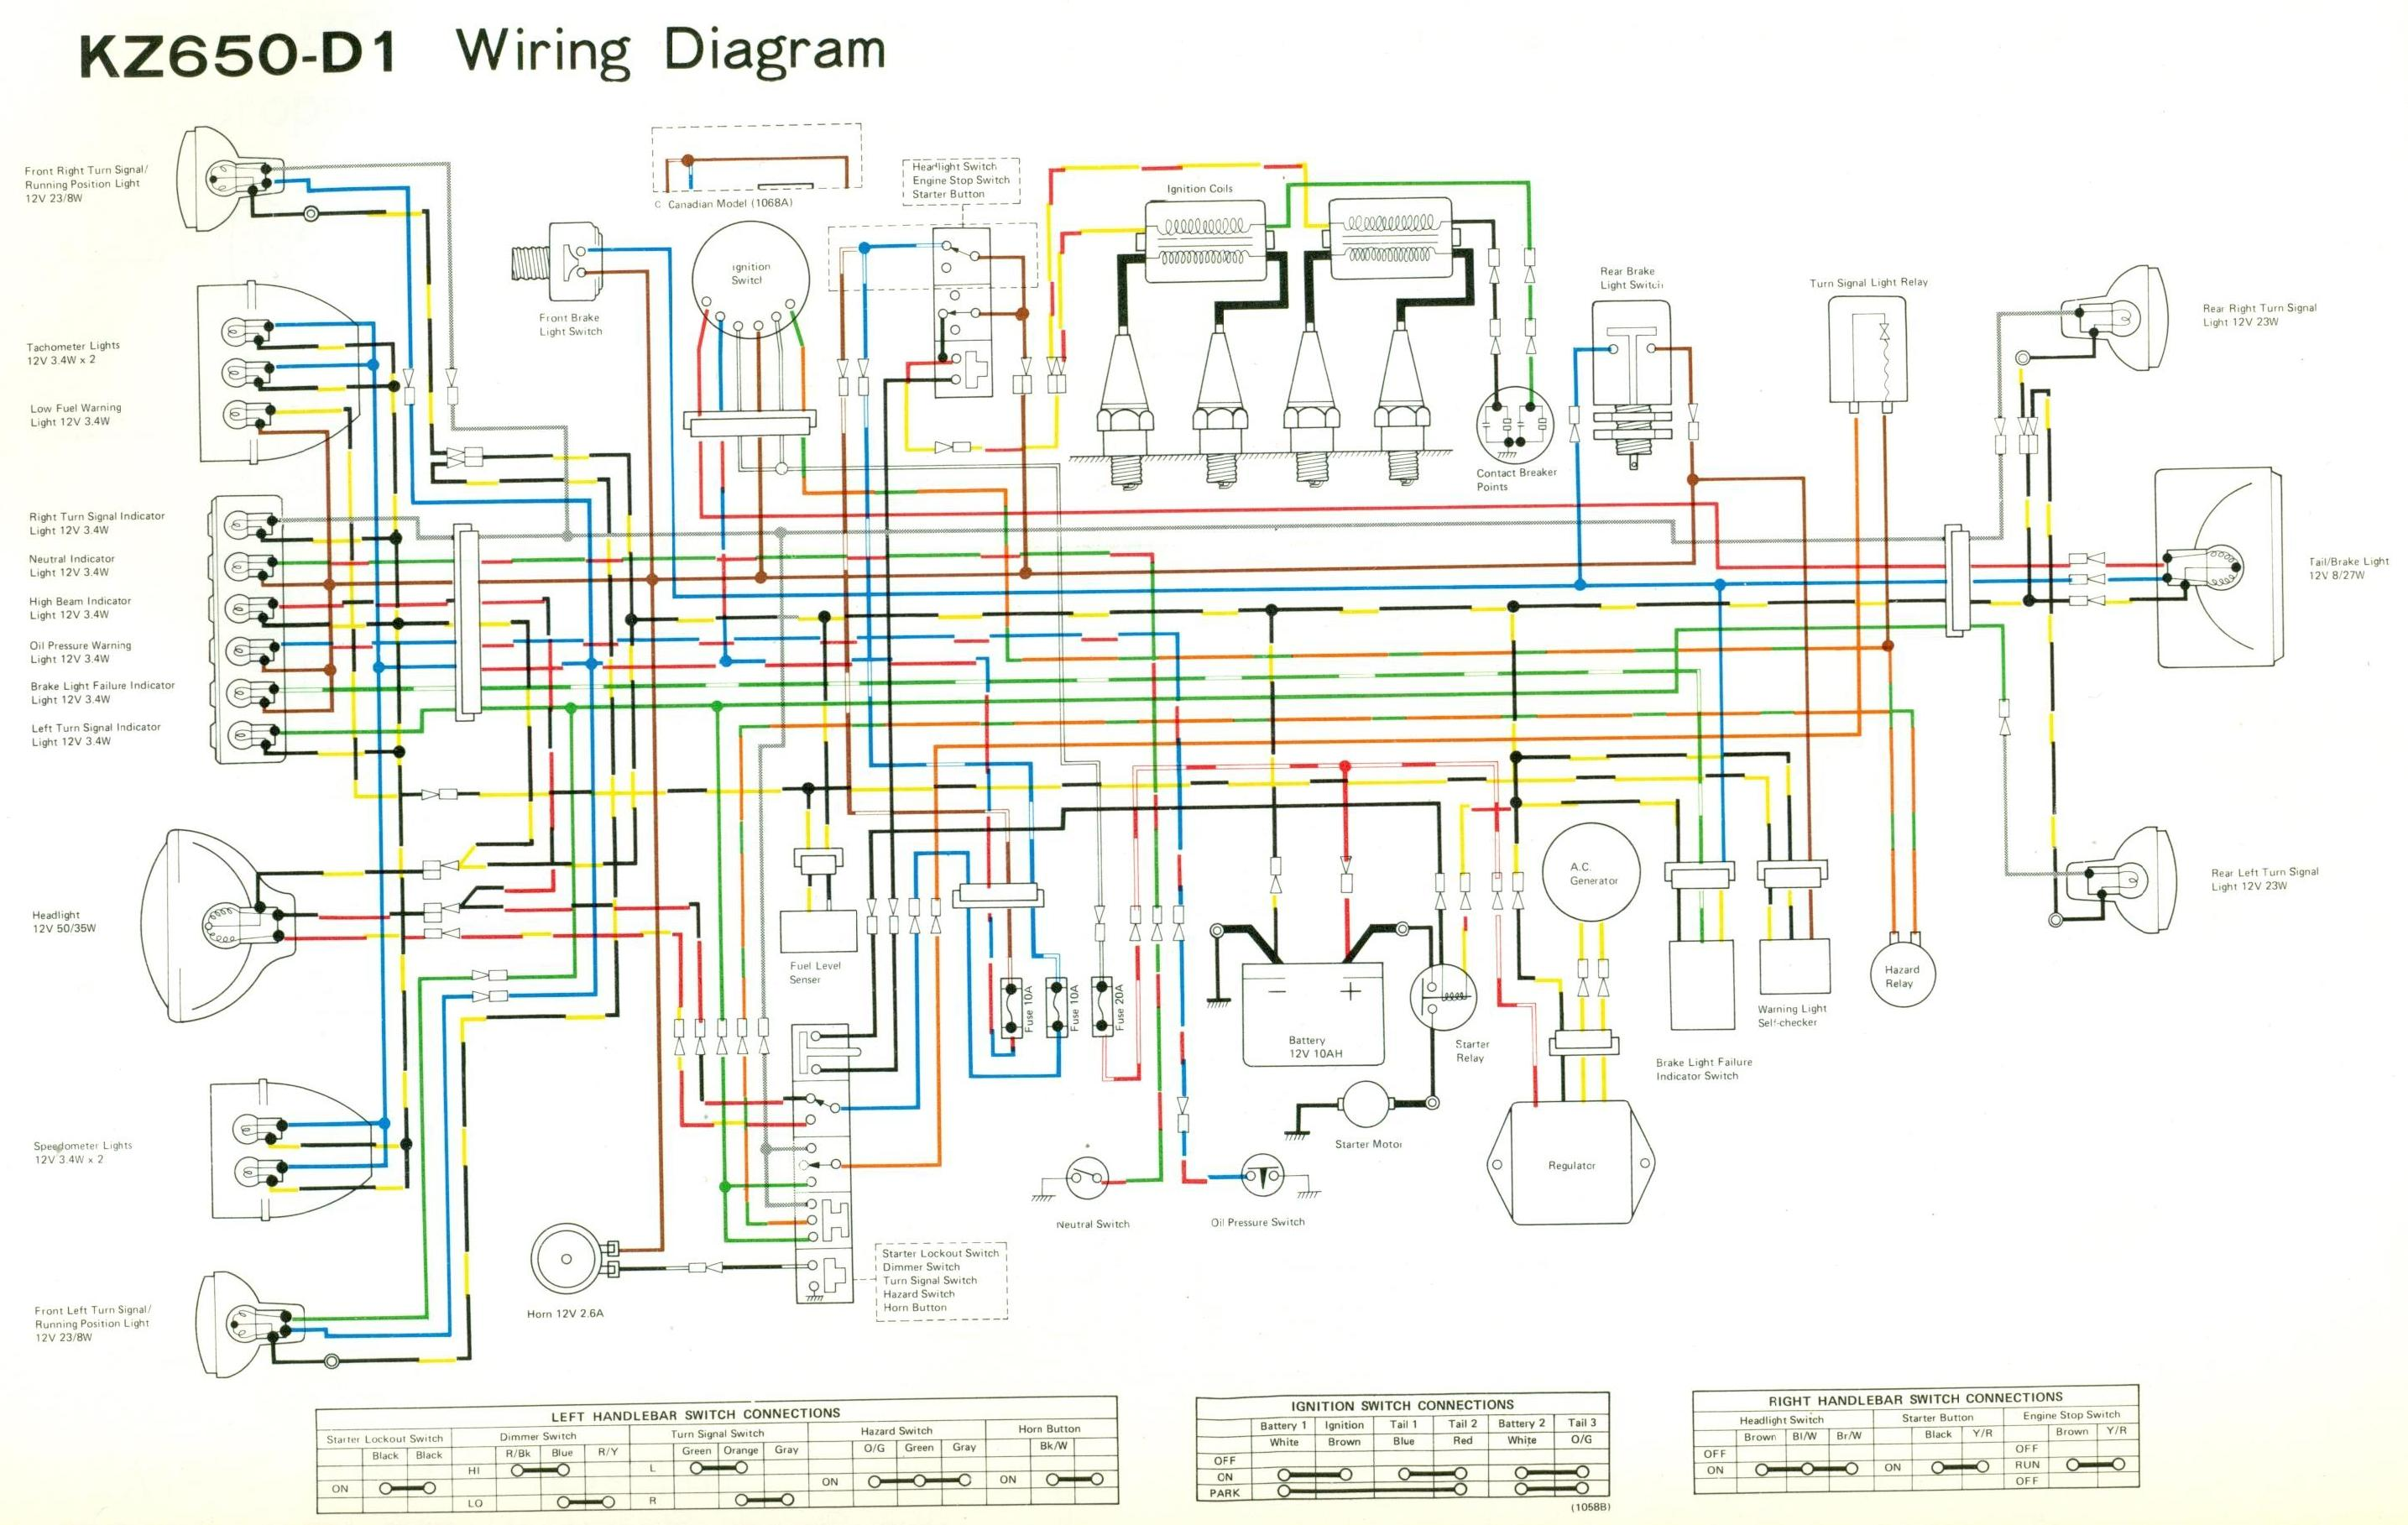 Kawasaki Ninja 900 Wiring Diagram Wiring Diagram And Schematics 2008 Ducati  848 Wiring Diagram 2008 Kawasaki Ninja Wiring Diagrams